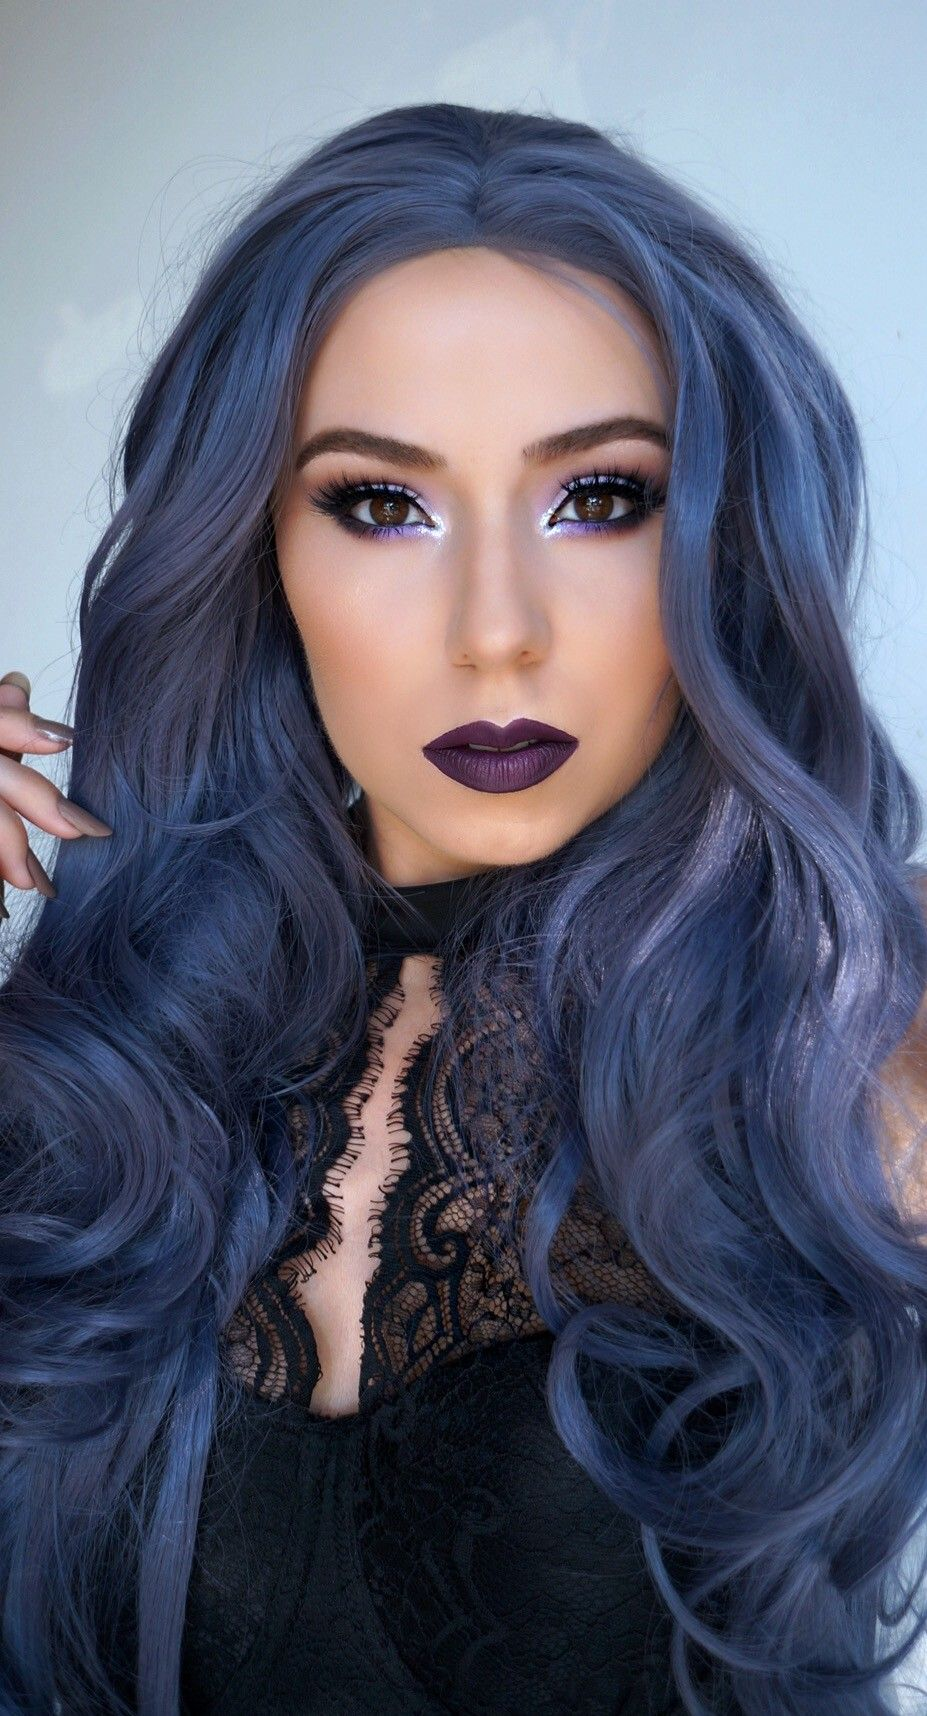 Eternal glow and vampy lip help create a gothic look inspired by